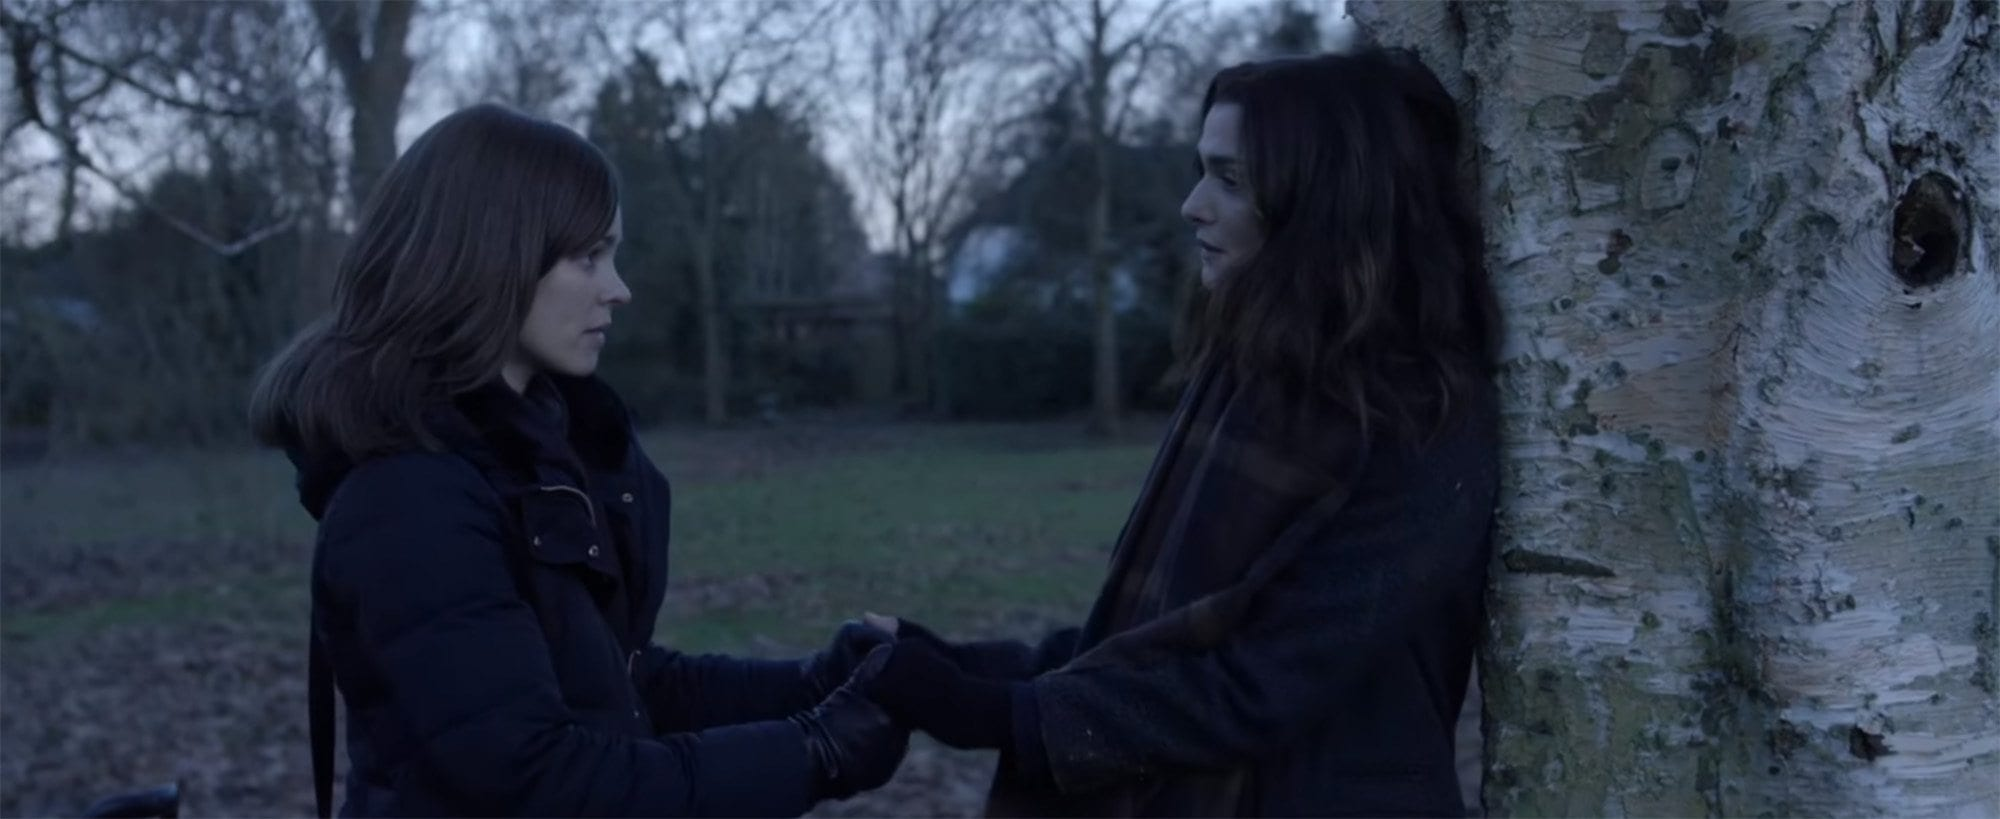 'Disobedience' follows a woman as she returns to the community that shunned her decades earlier for an attraction to a childhood friend.